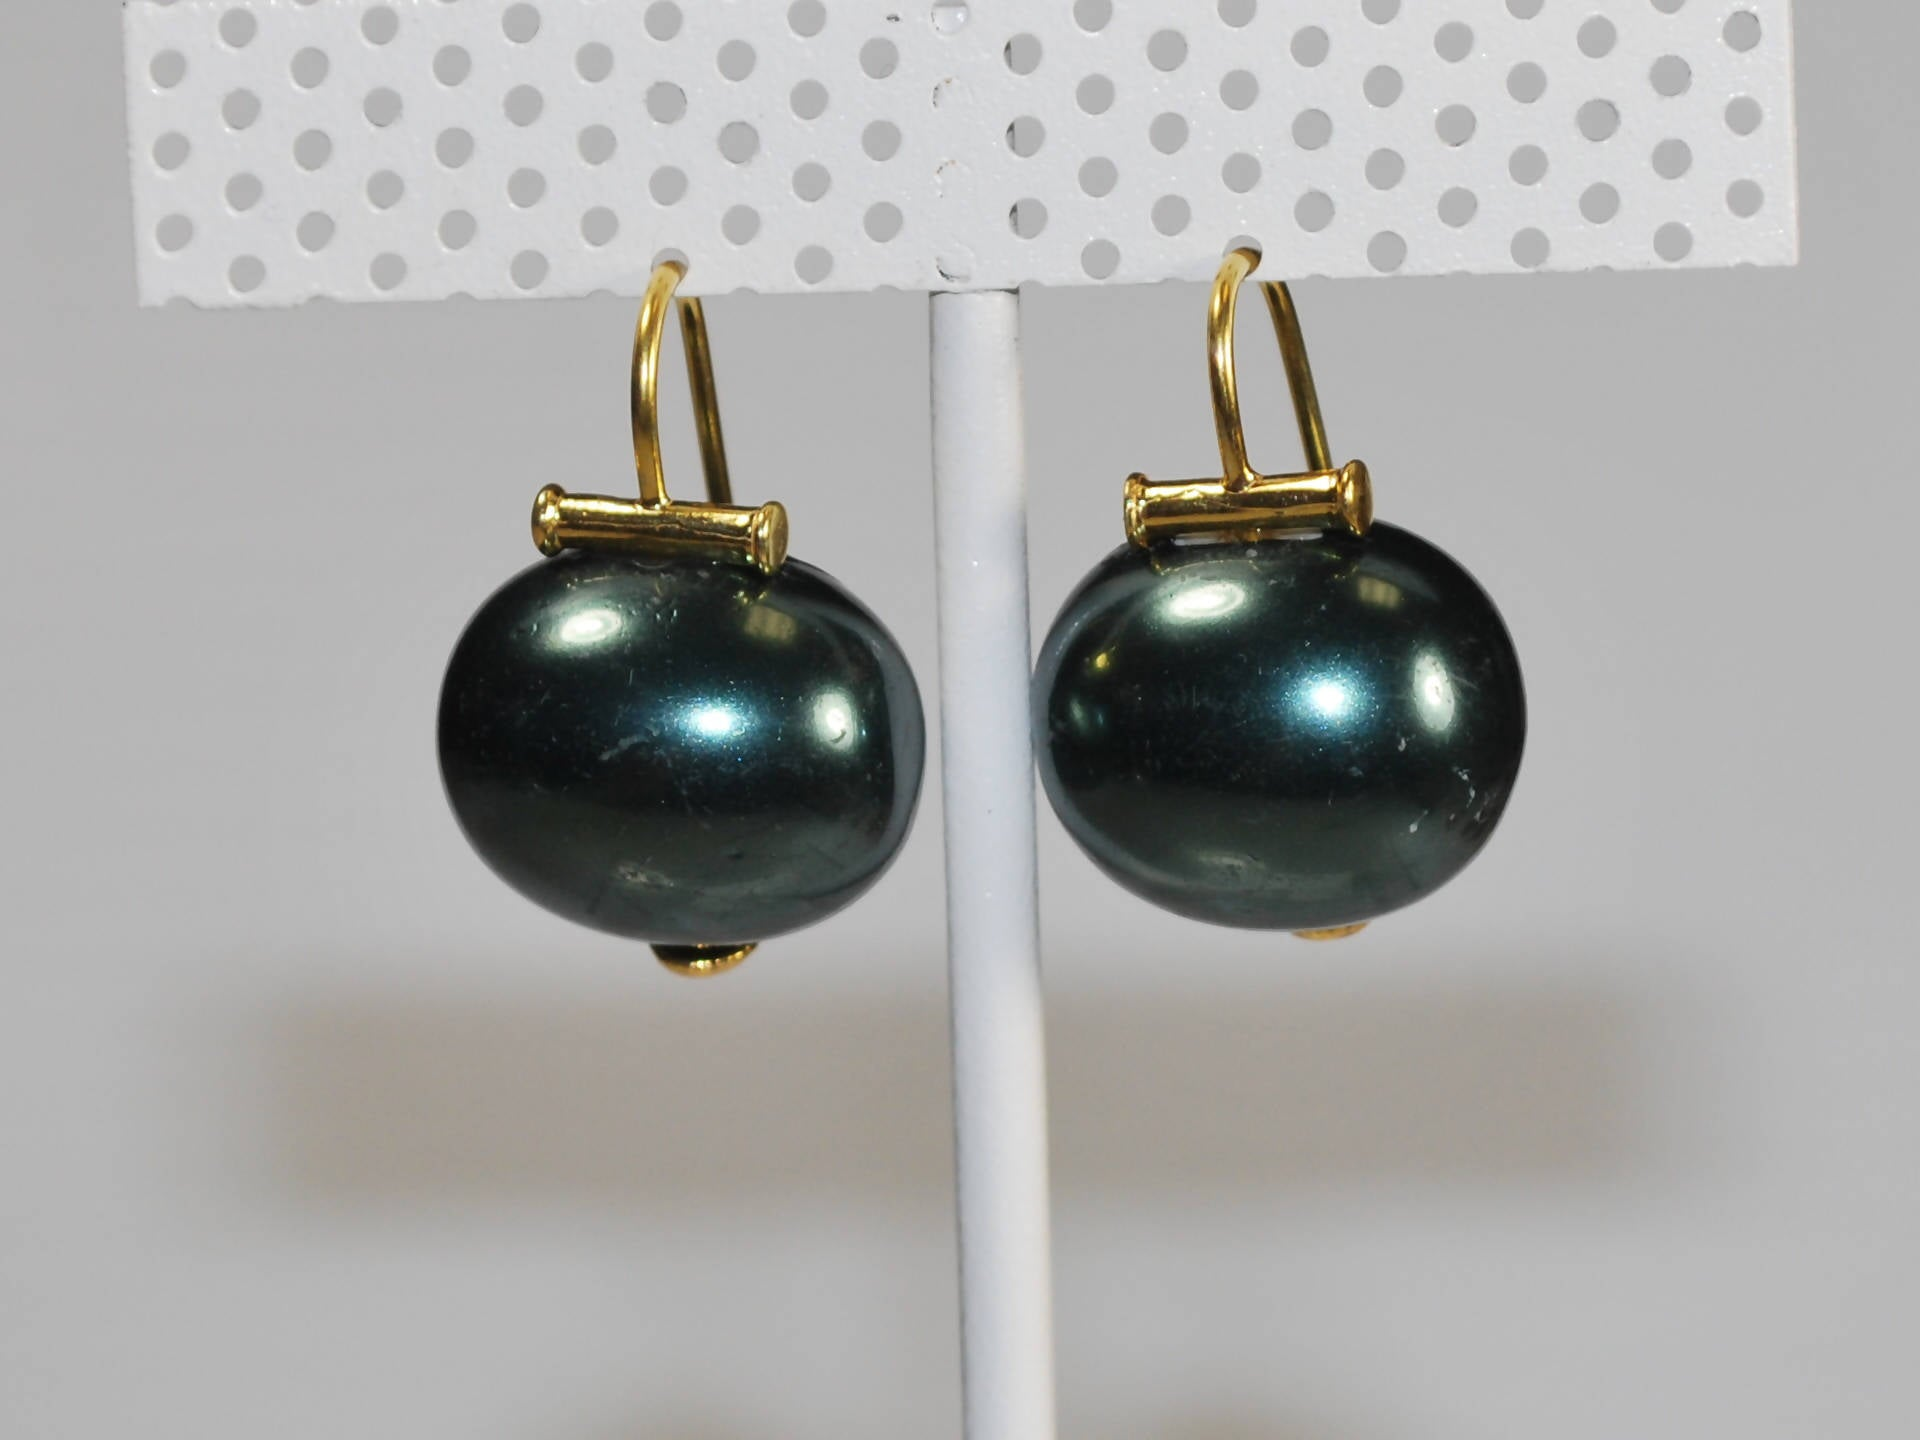 Mother of Pearl Earring in Deep Teal with Gold French wire (MOPe804)